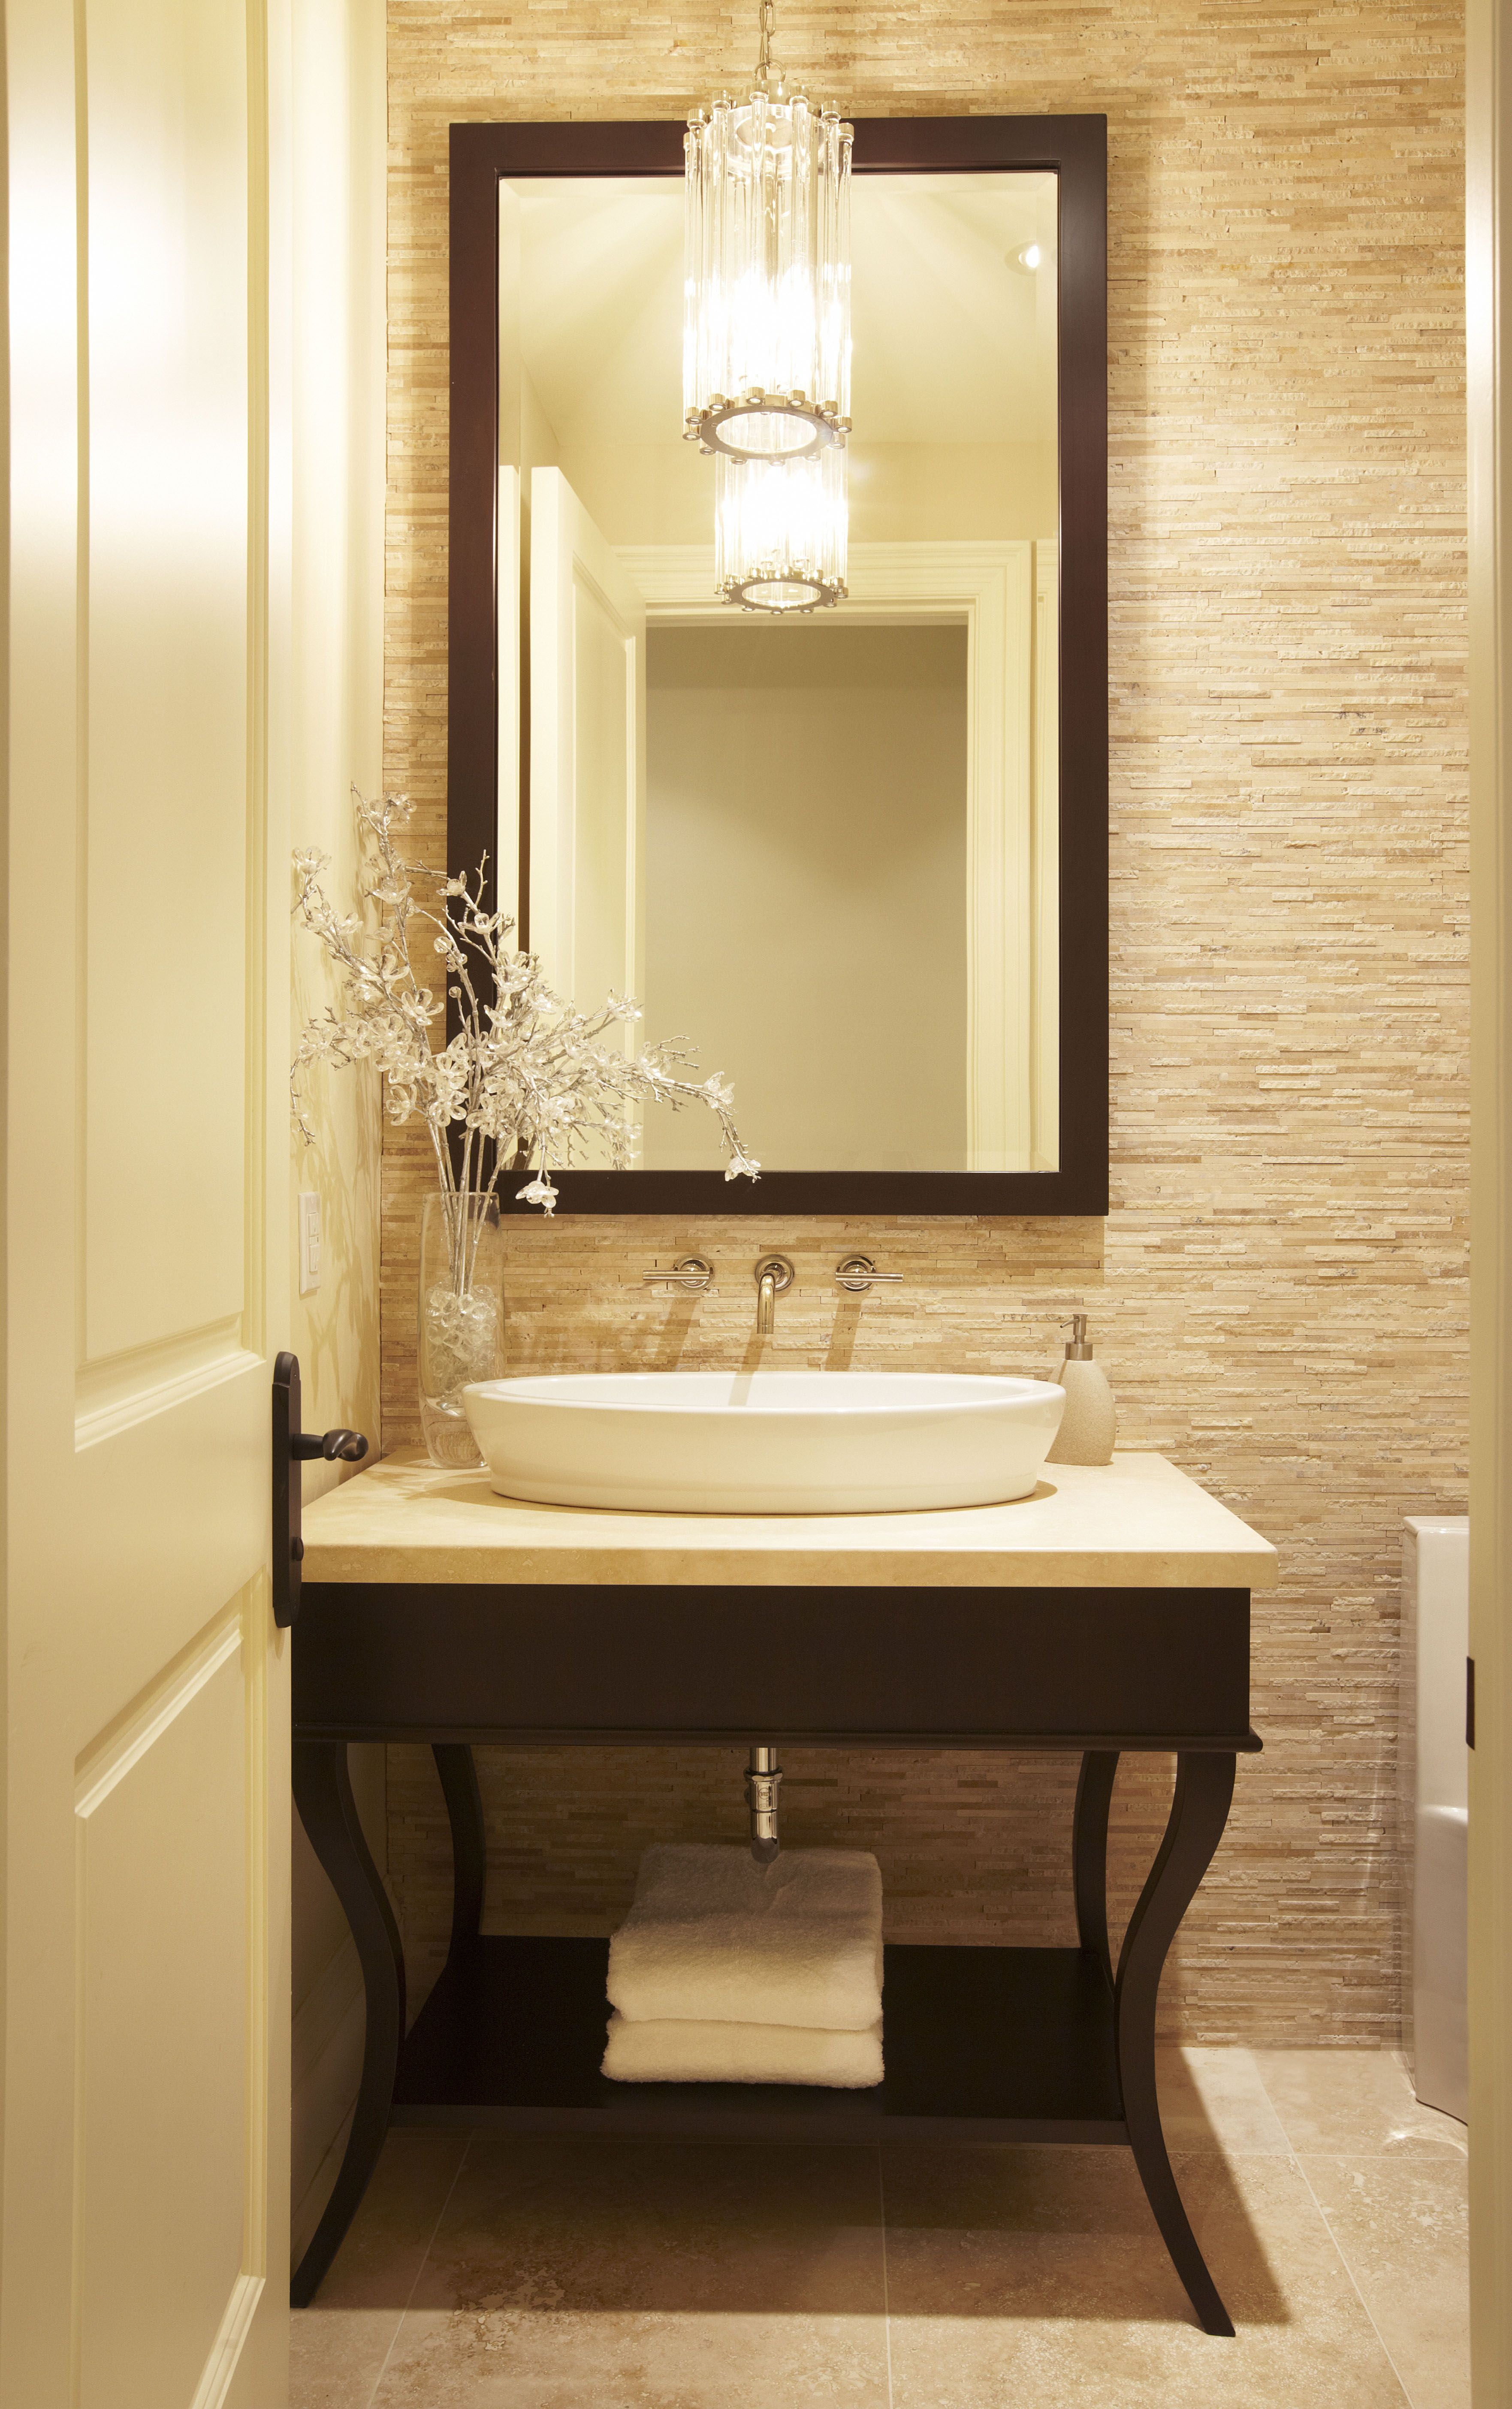 """A Transitional Style Great Room By Parkyn Design Www Parkyndesign Com: A Transitional Style Powder Room By """"Parkyn Design"""" Www.parkyndesign.com"""